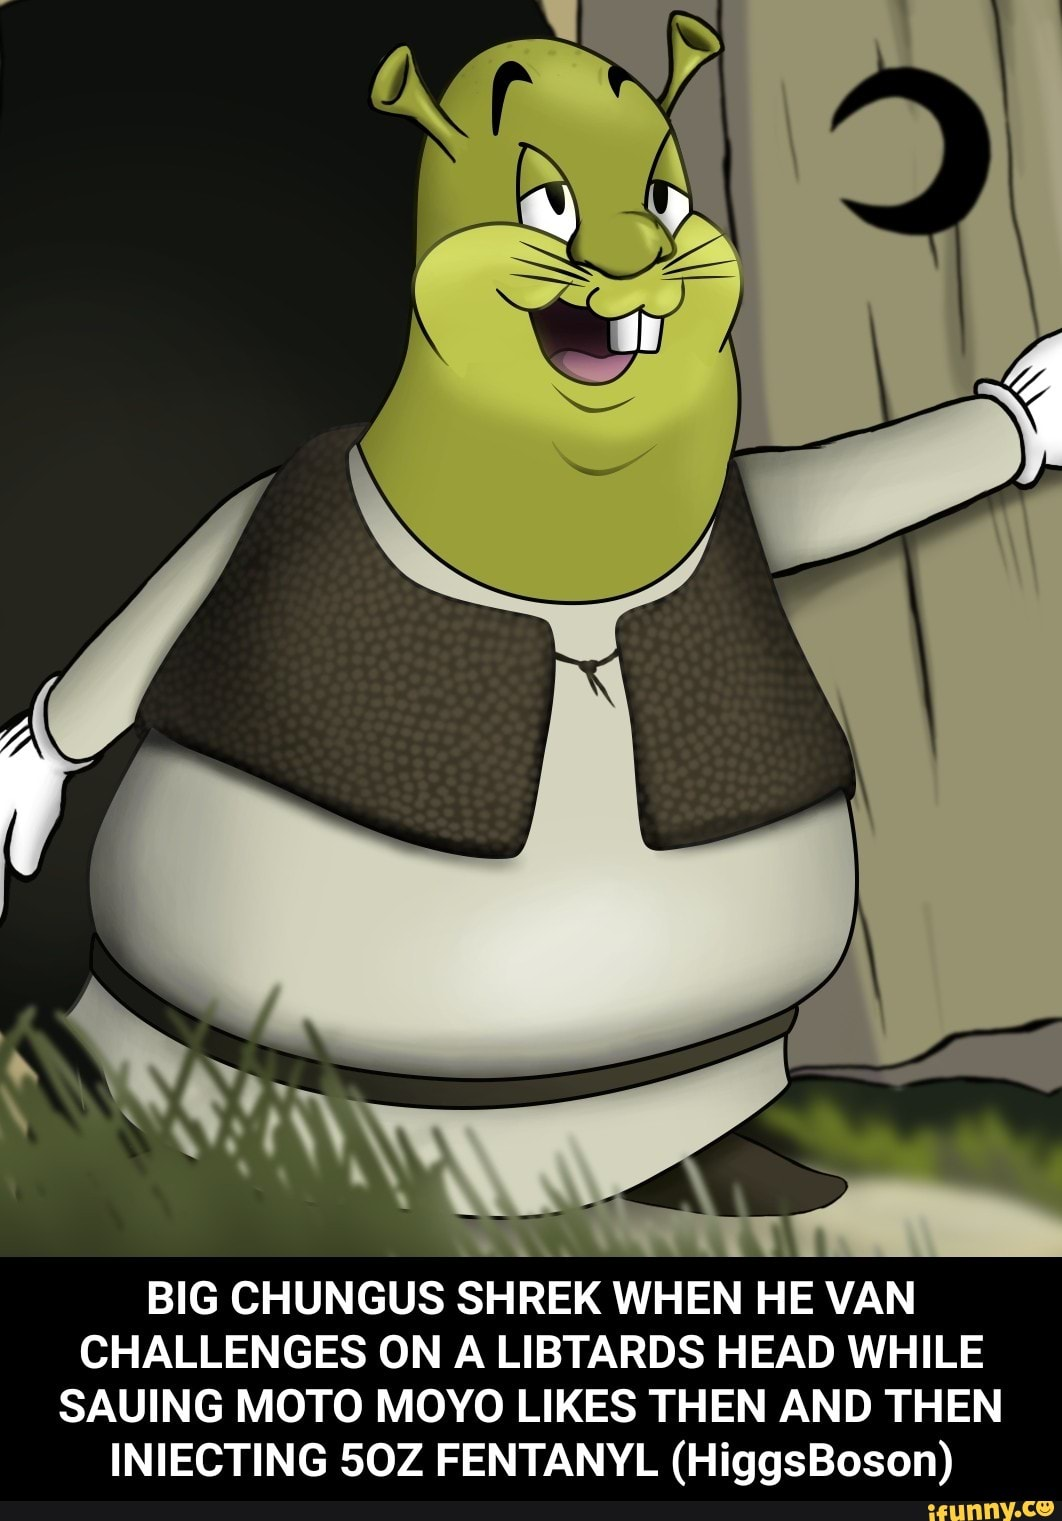 Big Chungus Shrek When He Van Challenges On A Libtards Head While